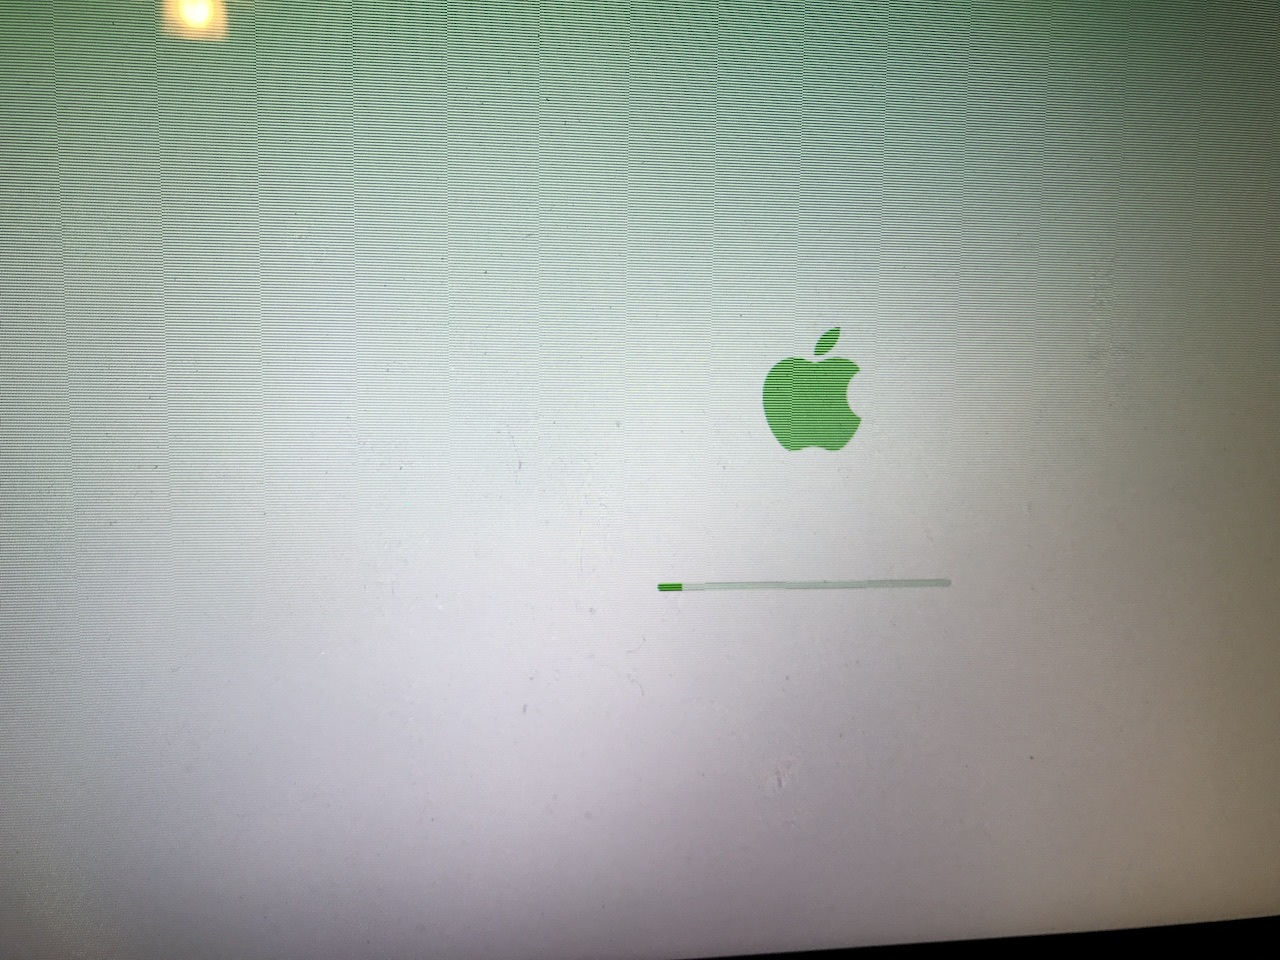 MacBook Pro booting with green Apple logo - Apple Community